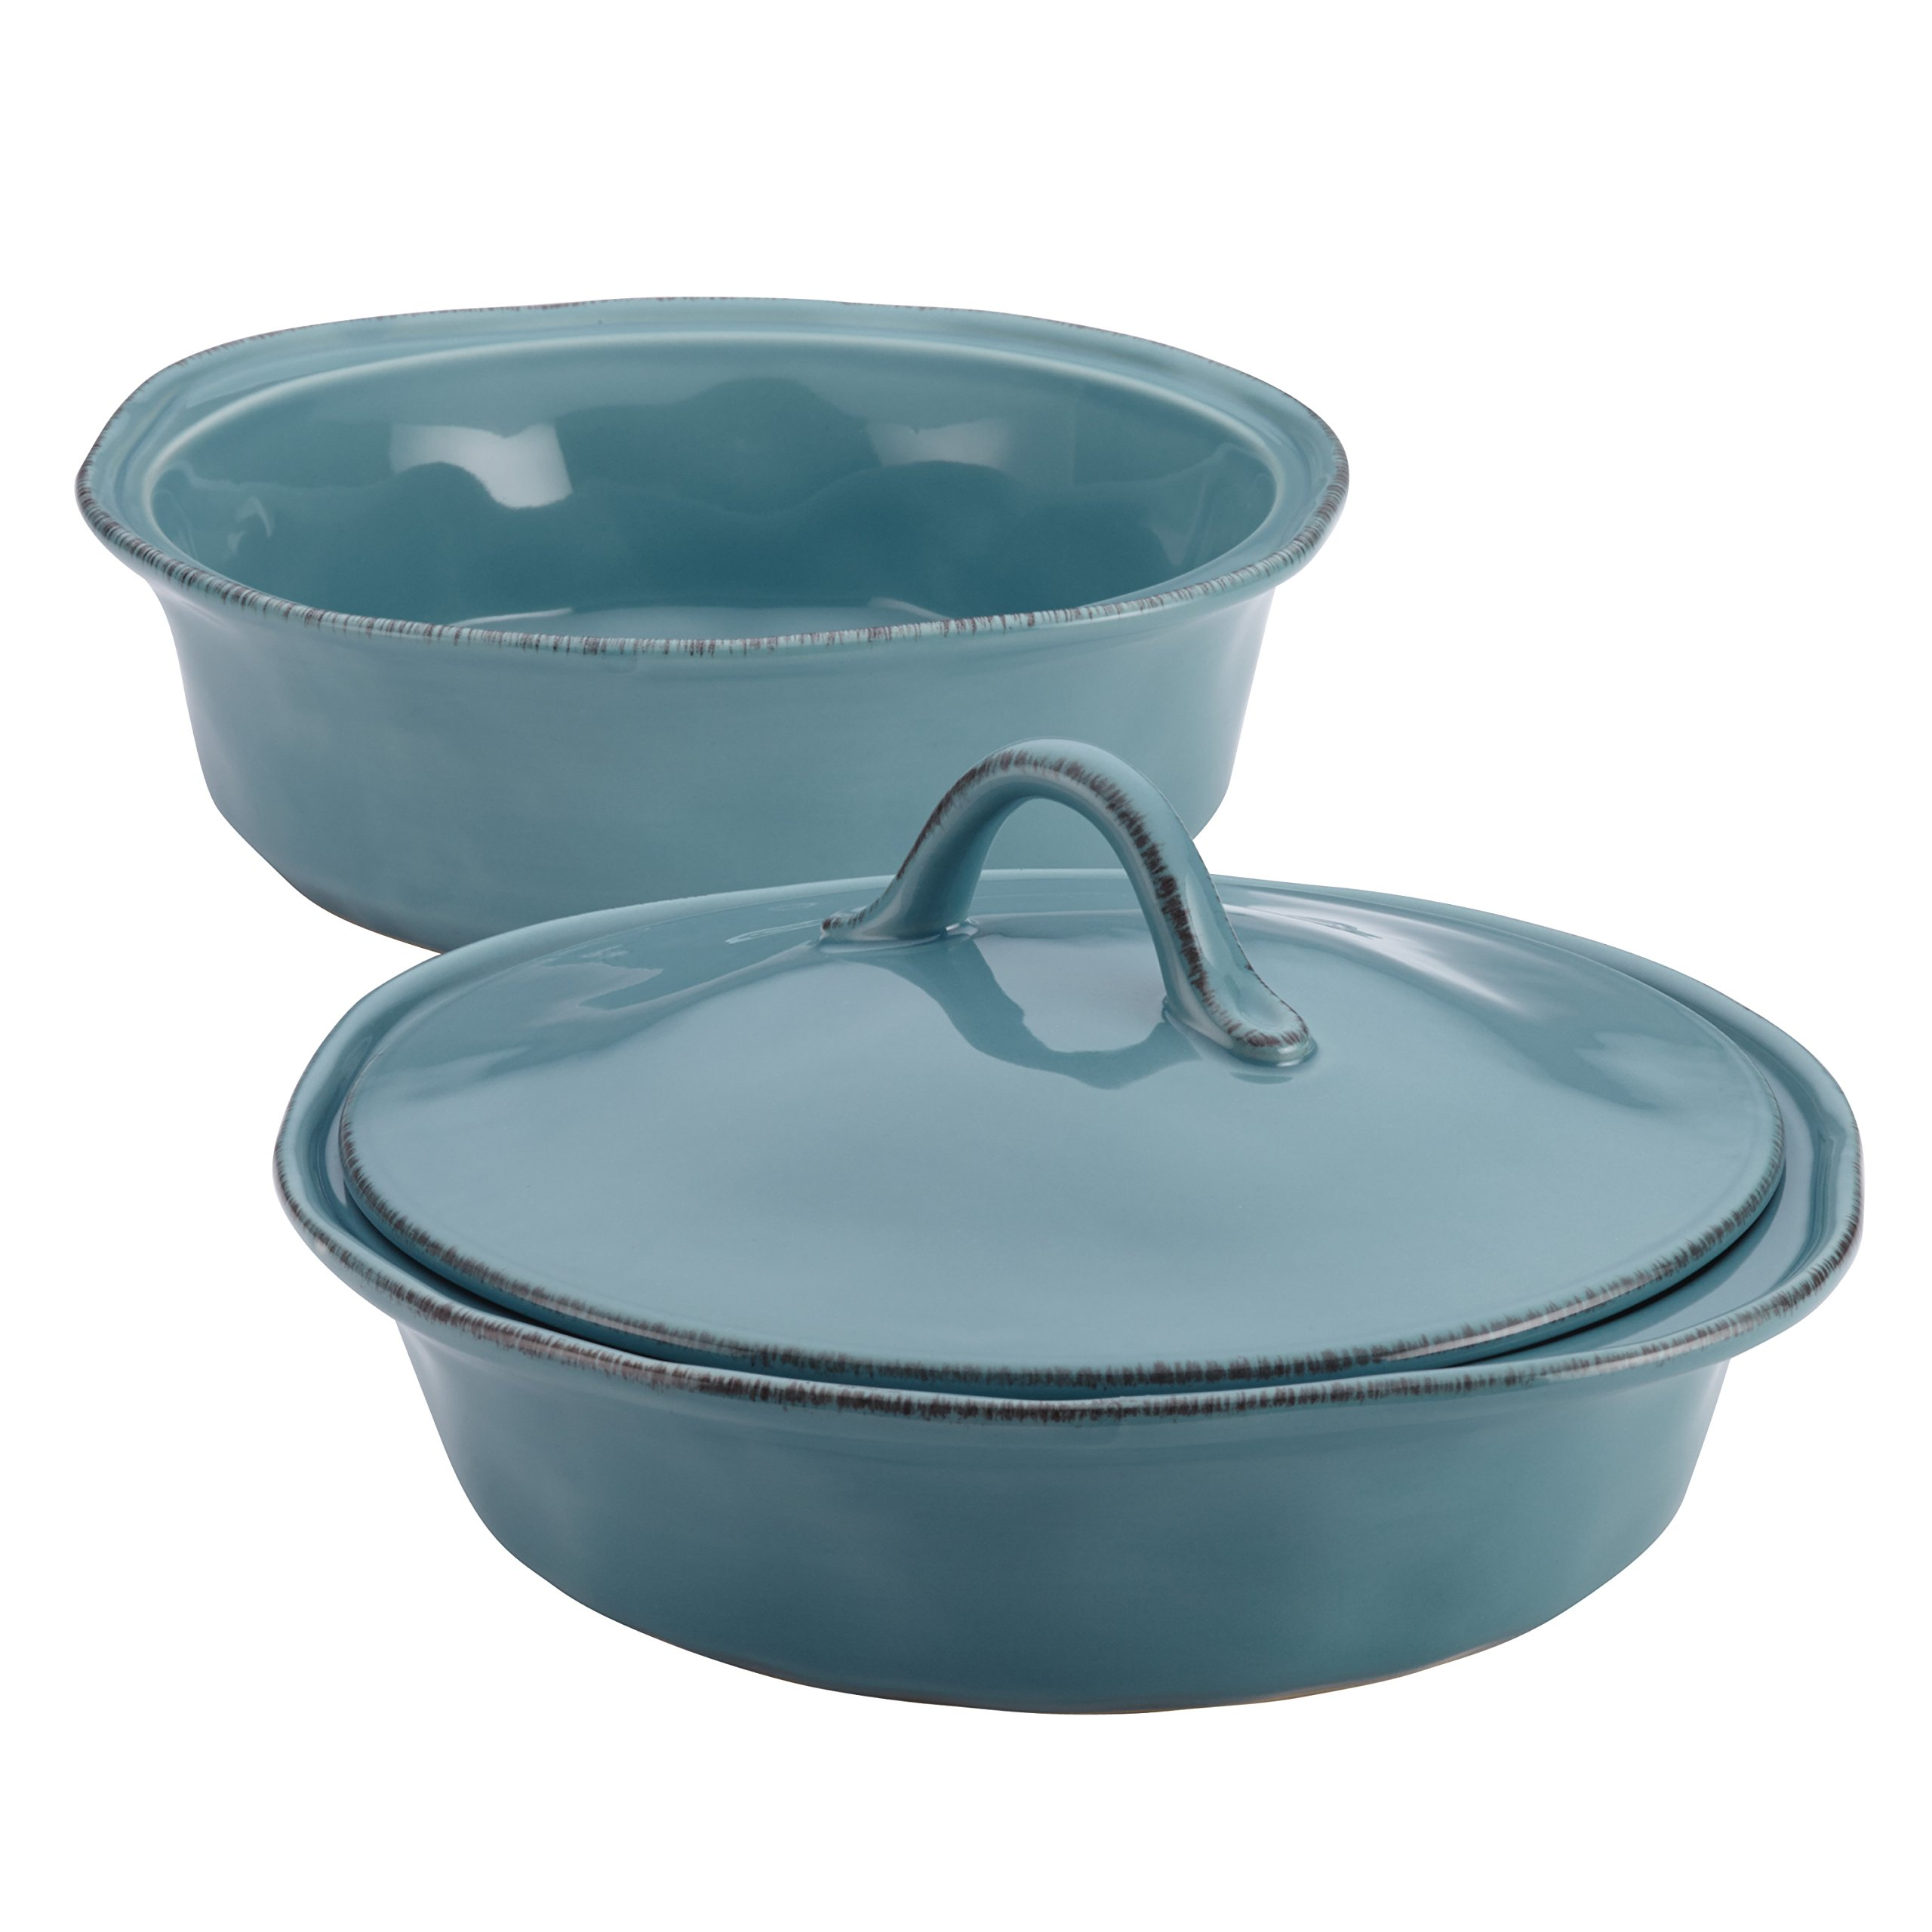 Rachael Ray 58314 Cucina Stoneware Casserole Set, 3-Piece Casserole & Lid, Agave Blue by Rachael Ray